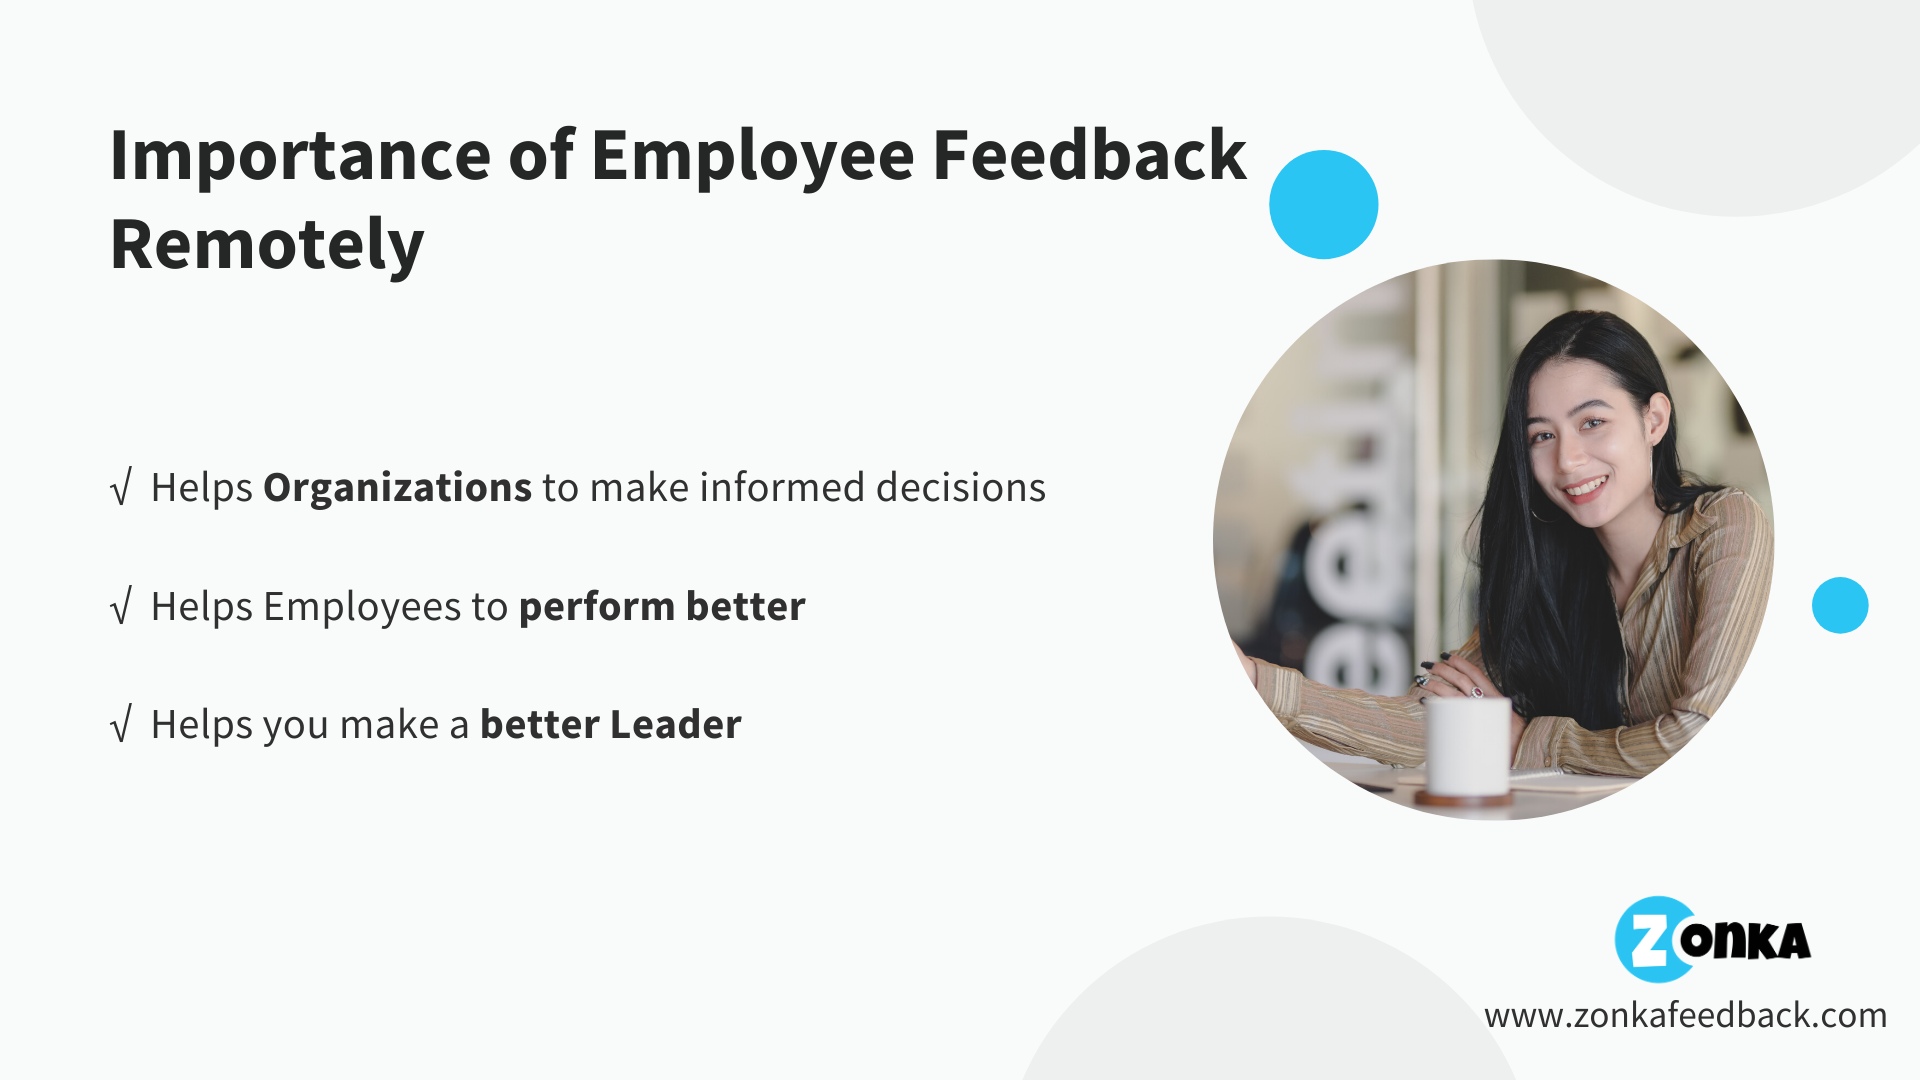 importance-of-employee-feedback-remotely